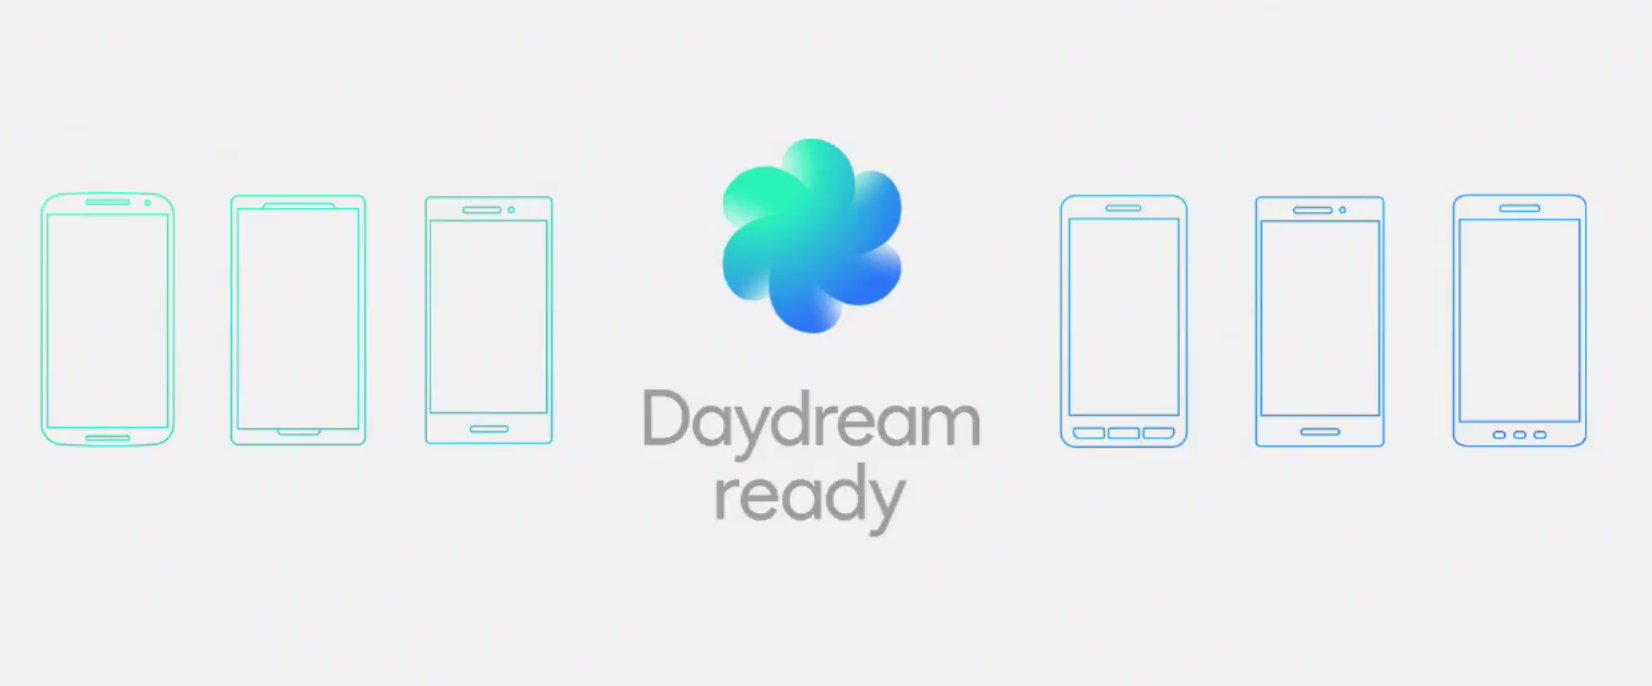 RT @TheNextWeb: Google VR boss: 'Hold off for a few months' if you want a Daydream phone https://t.co/gEFyB3GChv https://t.co/dQ55blflKV